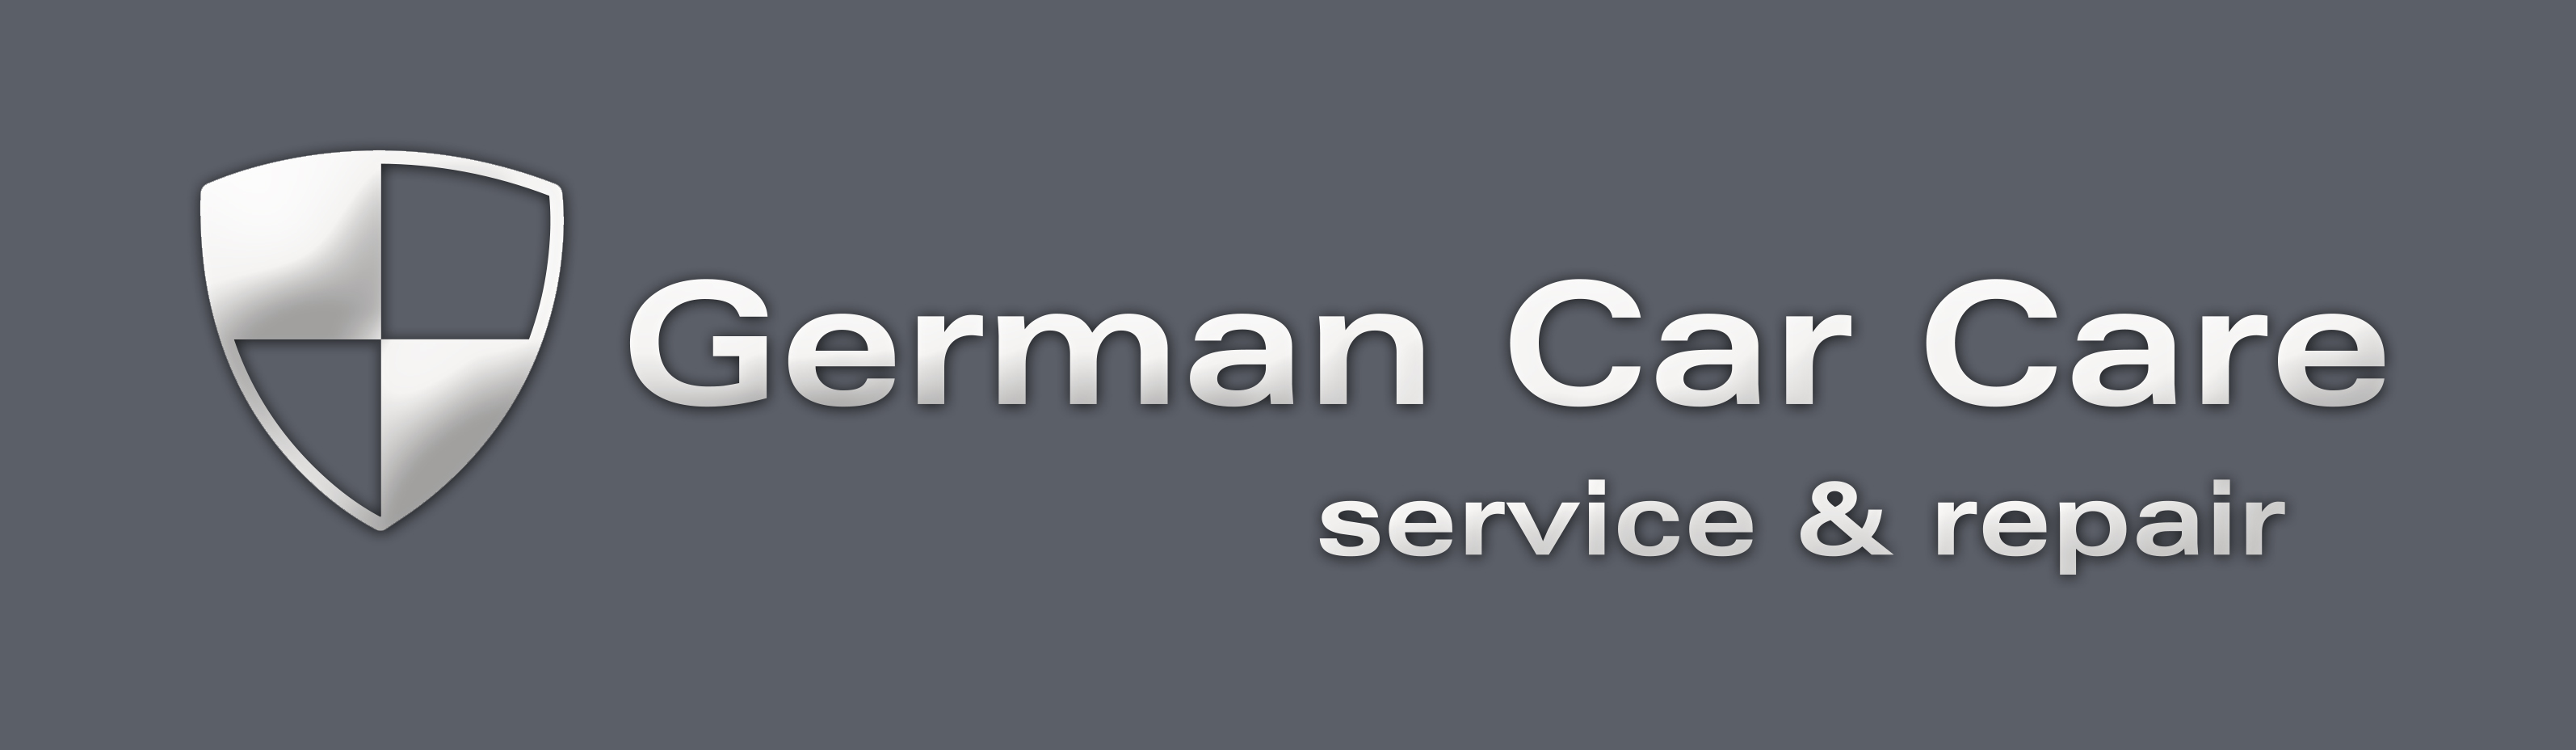 germancarcare